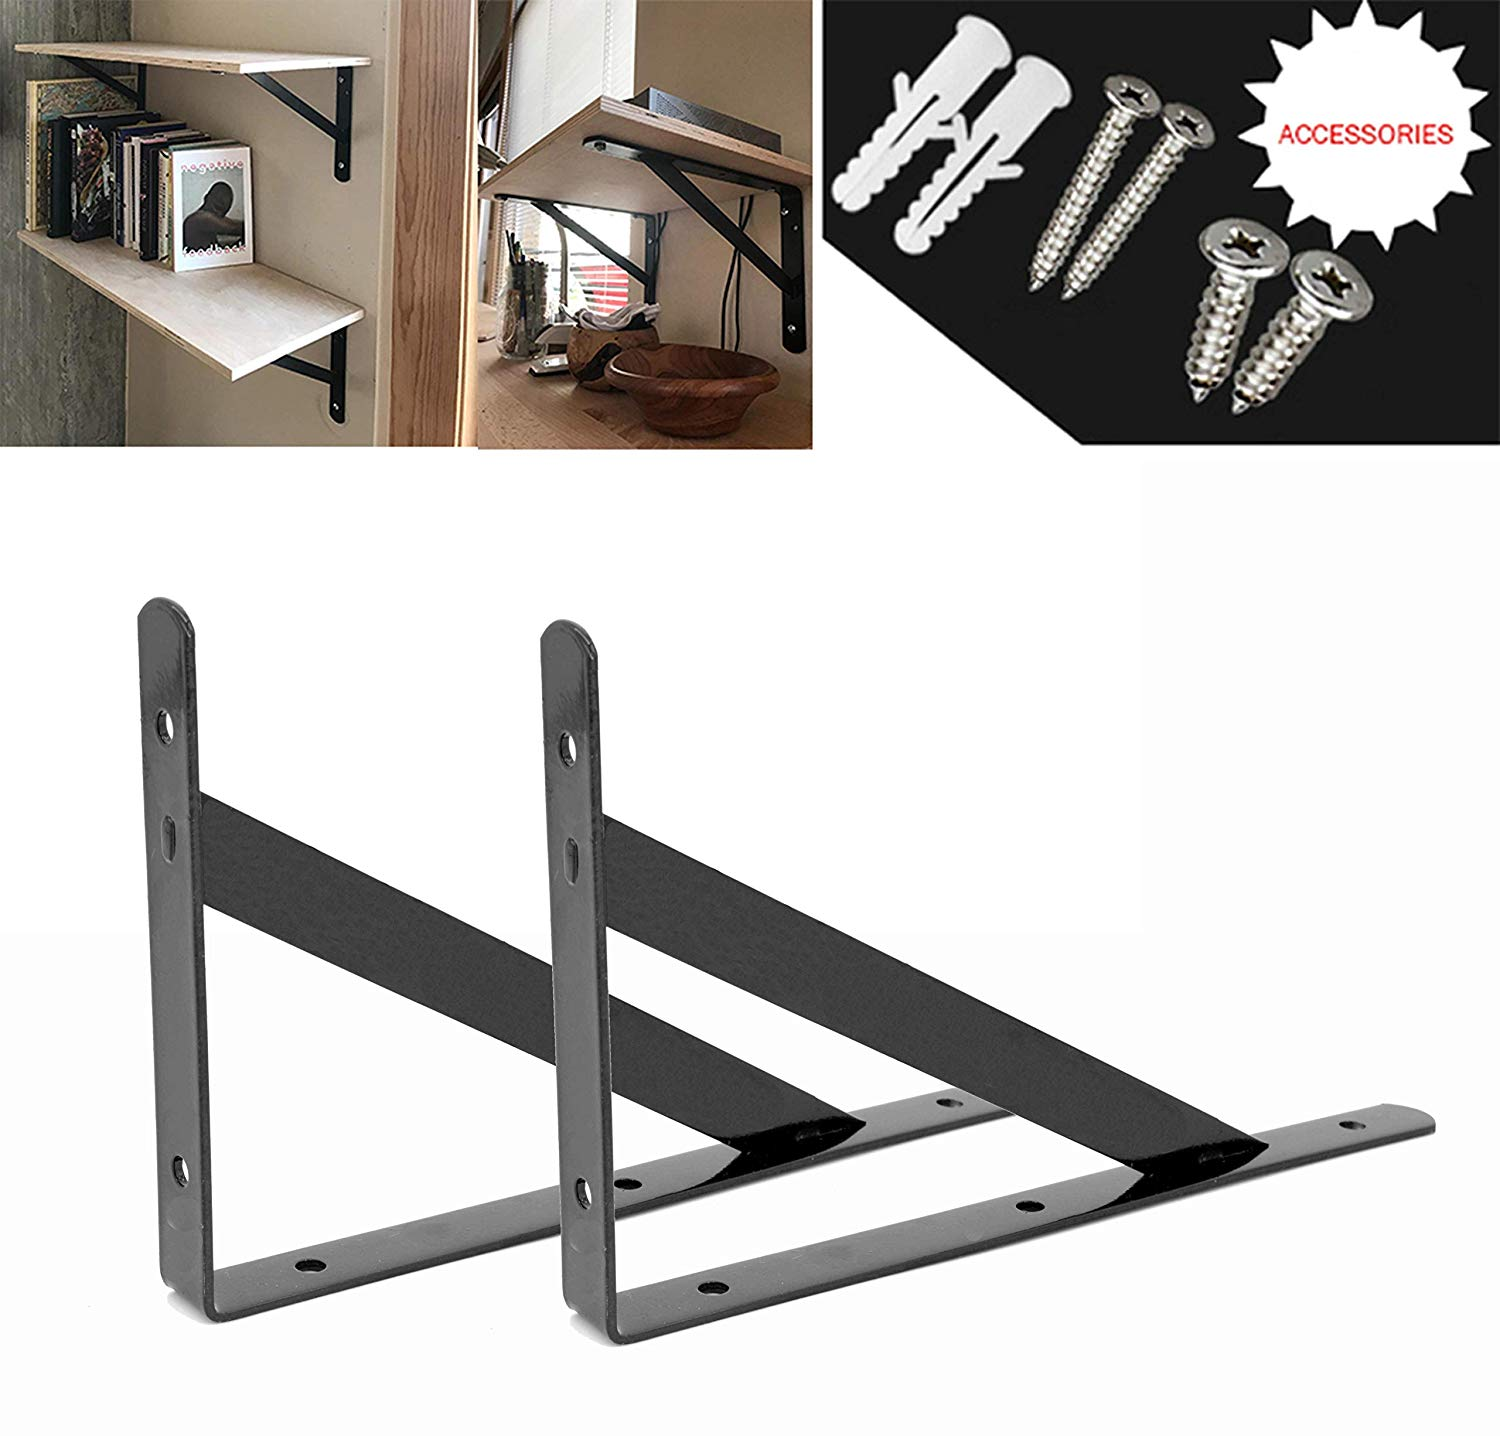 heavy duty shelf brackets floating shelves tripod corner triangle bracket brace support wall hanging black inch ovov home rustic wood shelving ideas round metal bookshelf holman